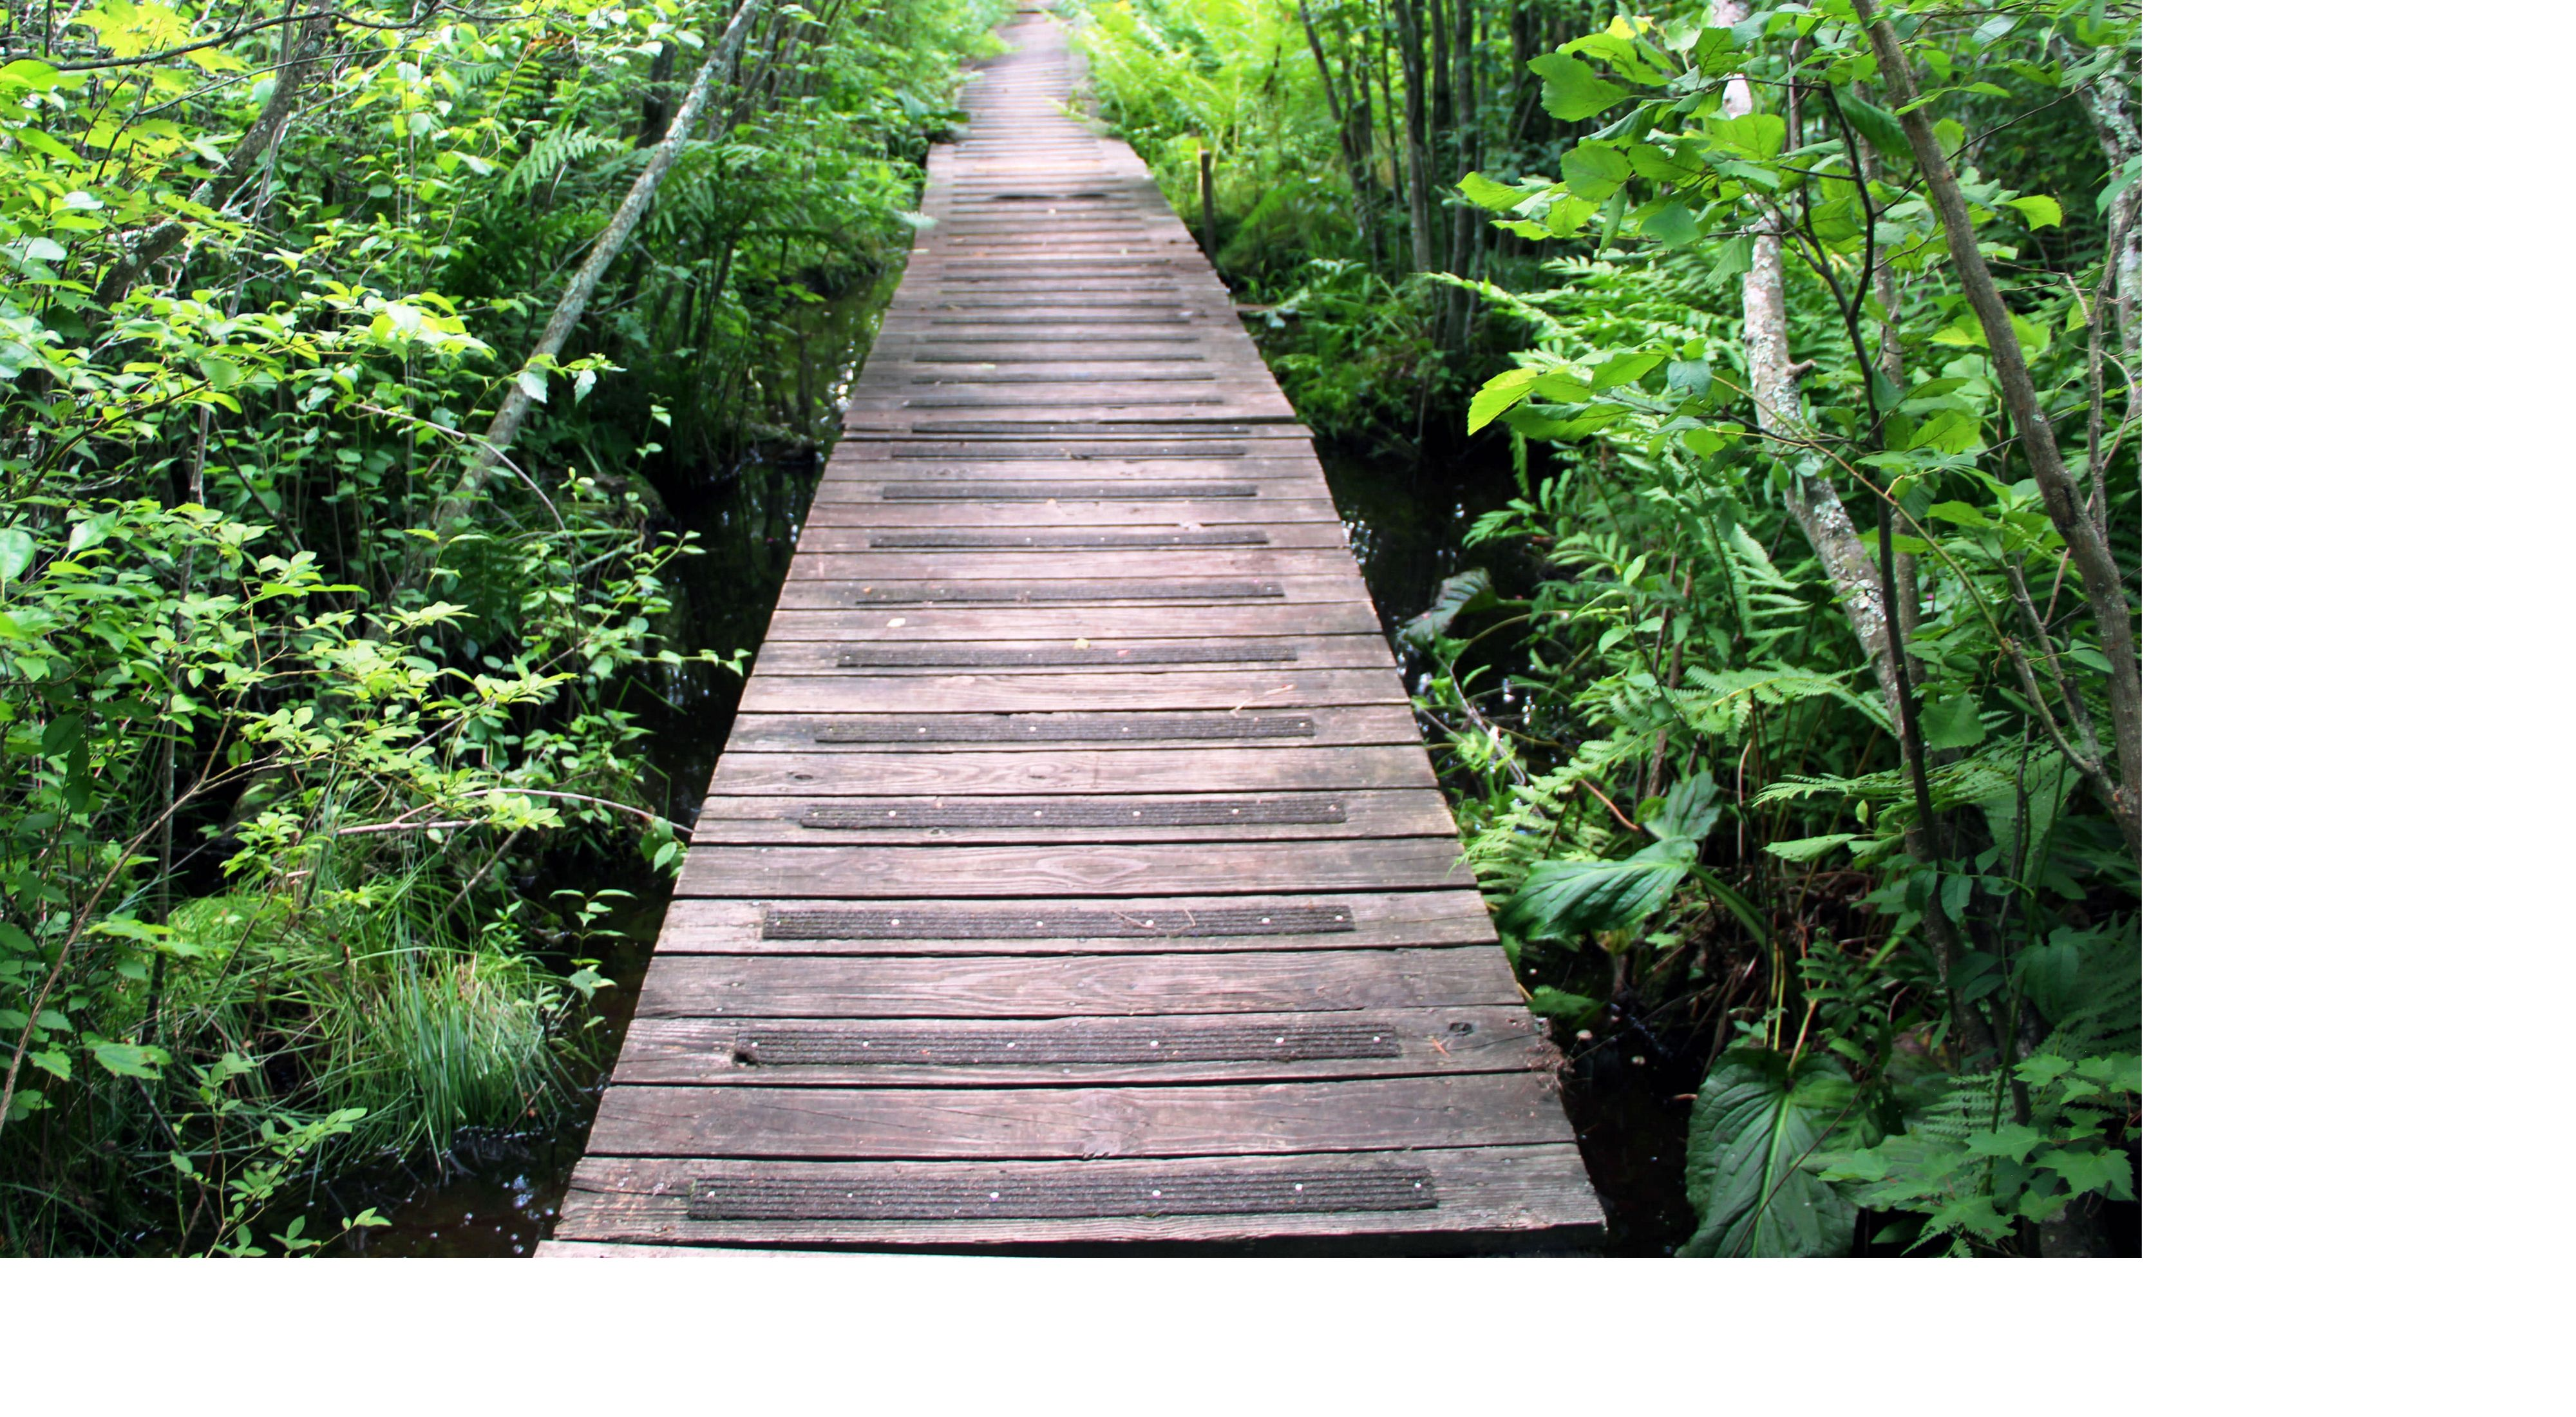 Green plants and trees surround a wooden boardwalk.